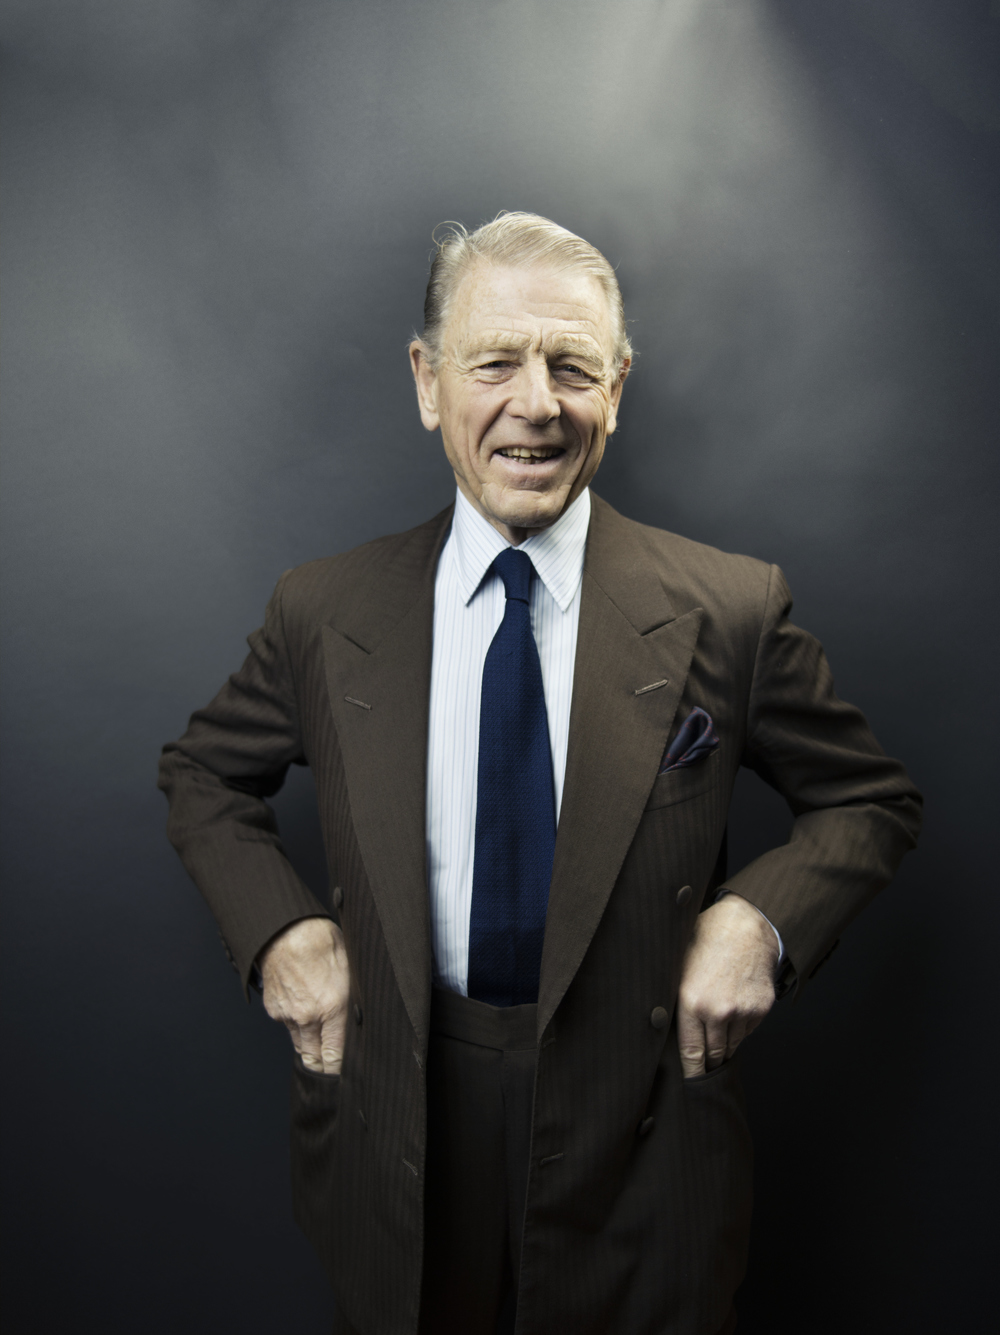 Interview with Edward Fox on the production An Ideal Husband